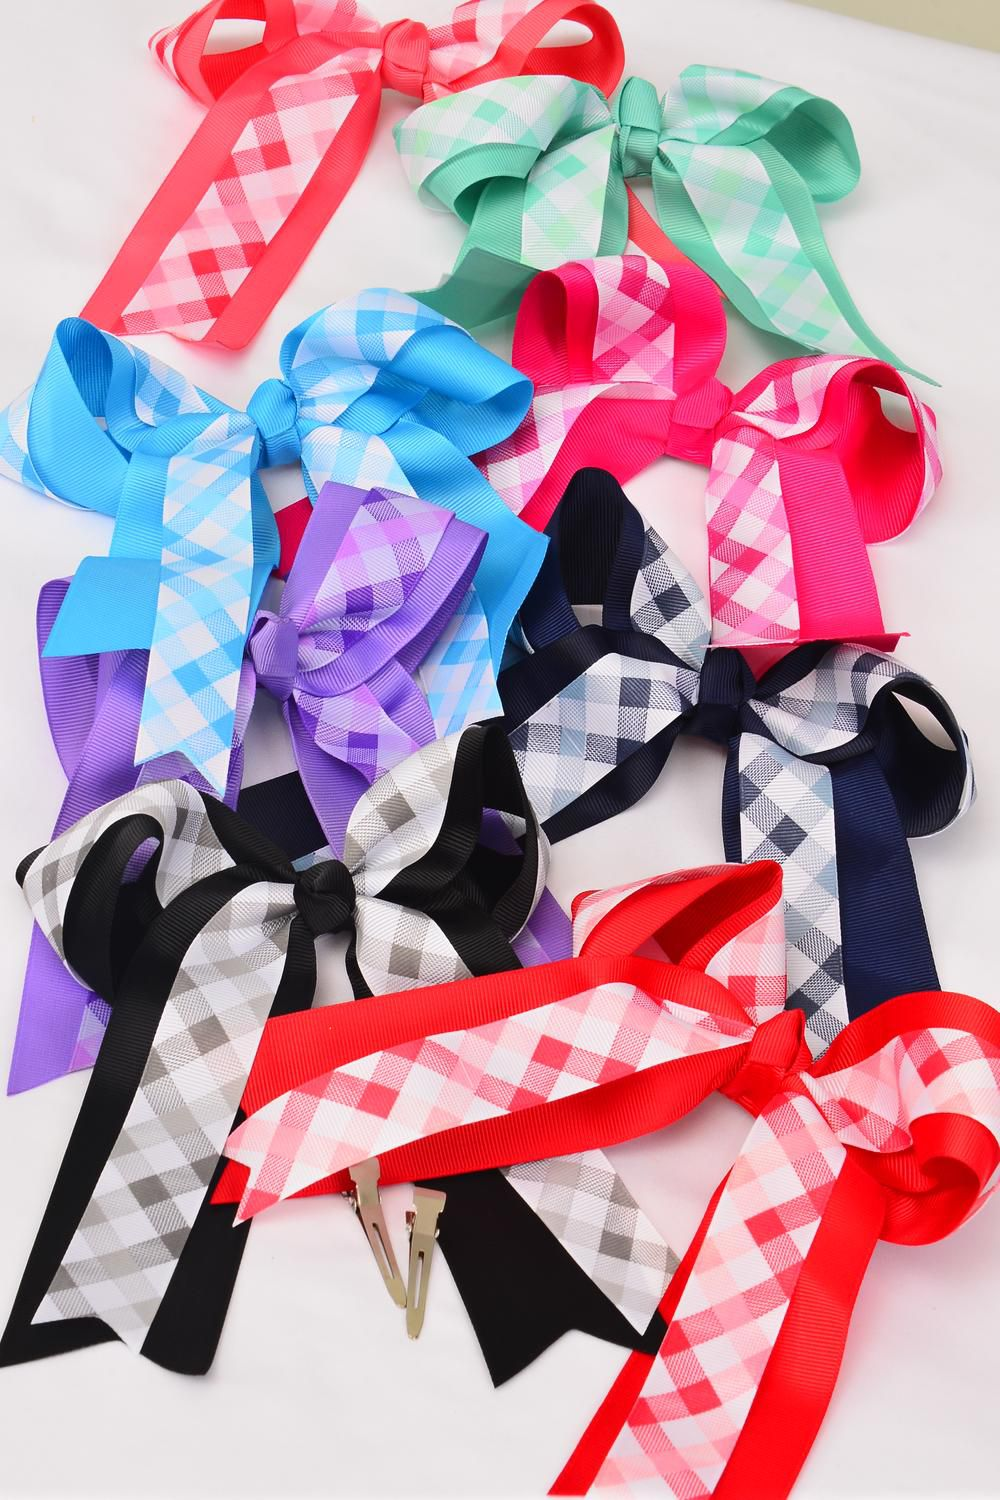 "Hair Bow Long Tail Double Layer Checkered Grosgrain Bowtie/DZ **Multi**  Size-6""x6.5"",Alligator Clip,2 Hot Pink,2 Blue,2 Black,2 Navy,1 Lavender,1 Mint,1 Red,1 Coral,8 Color Asst,Clip Strip & UPC Code"